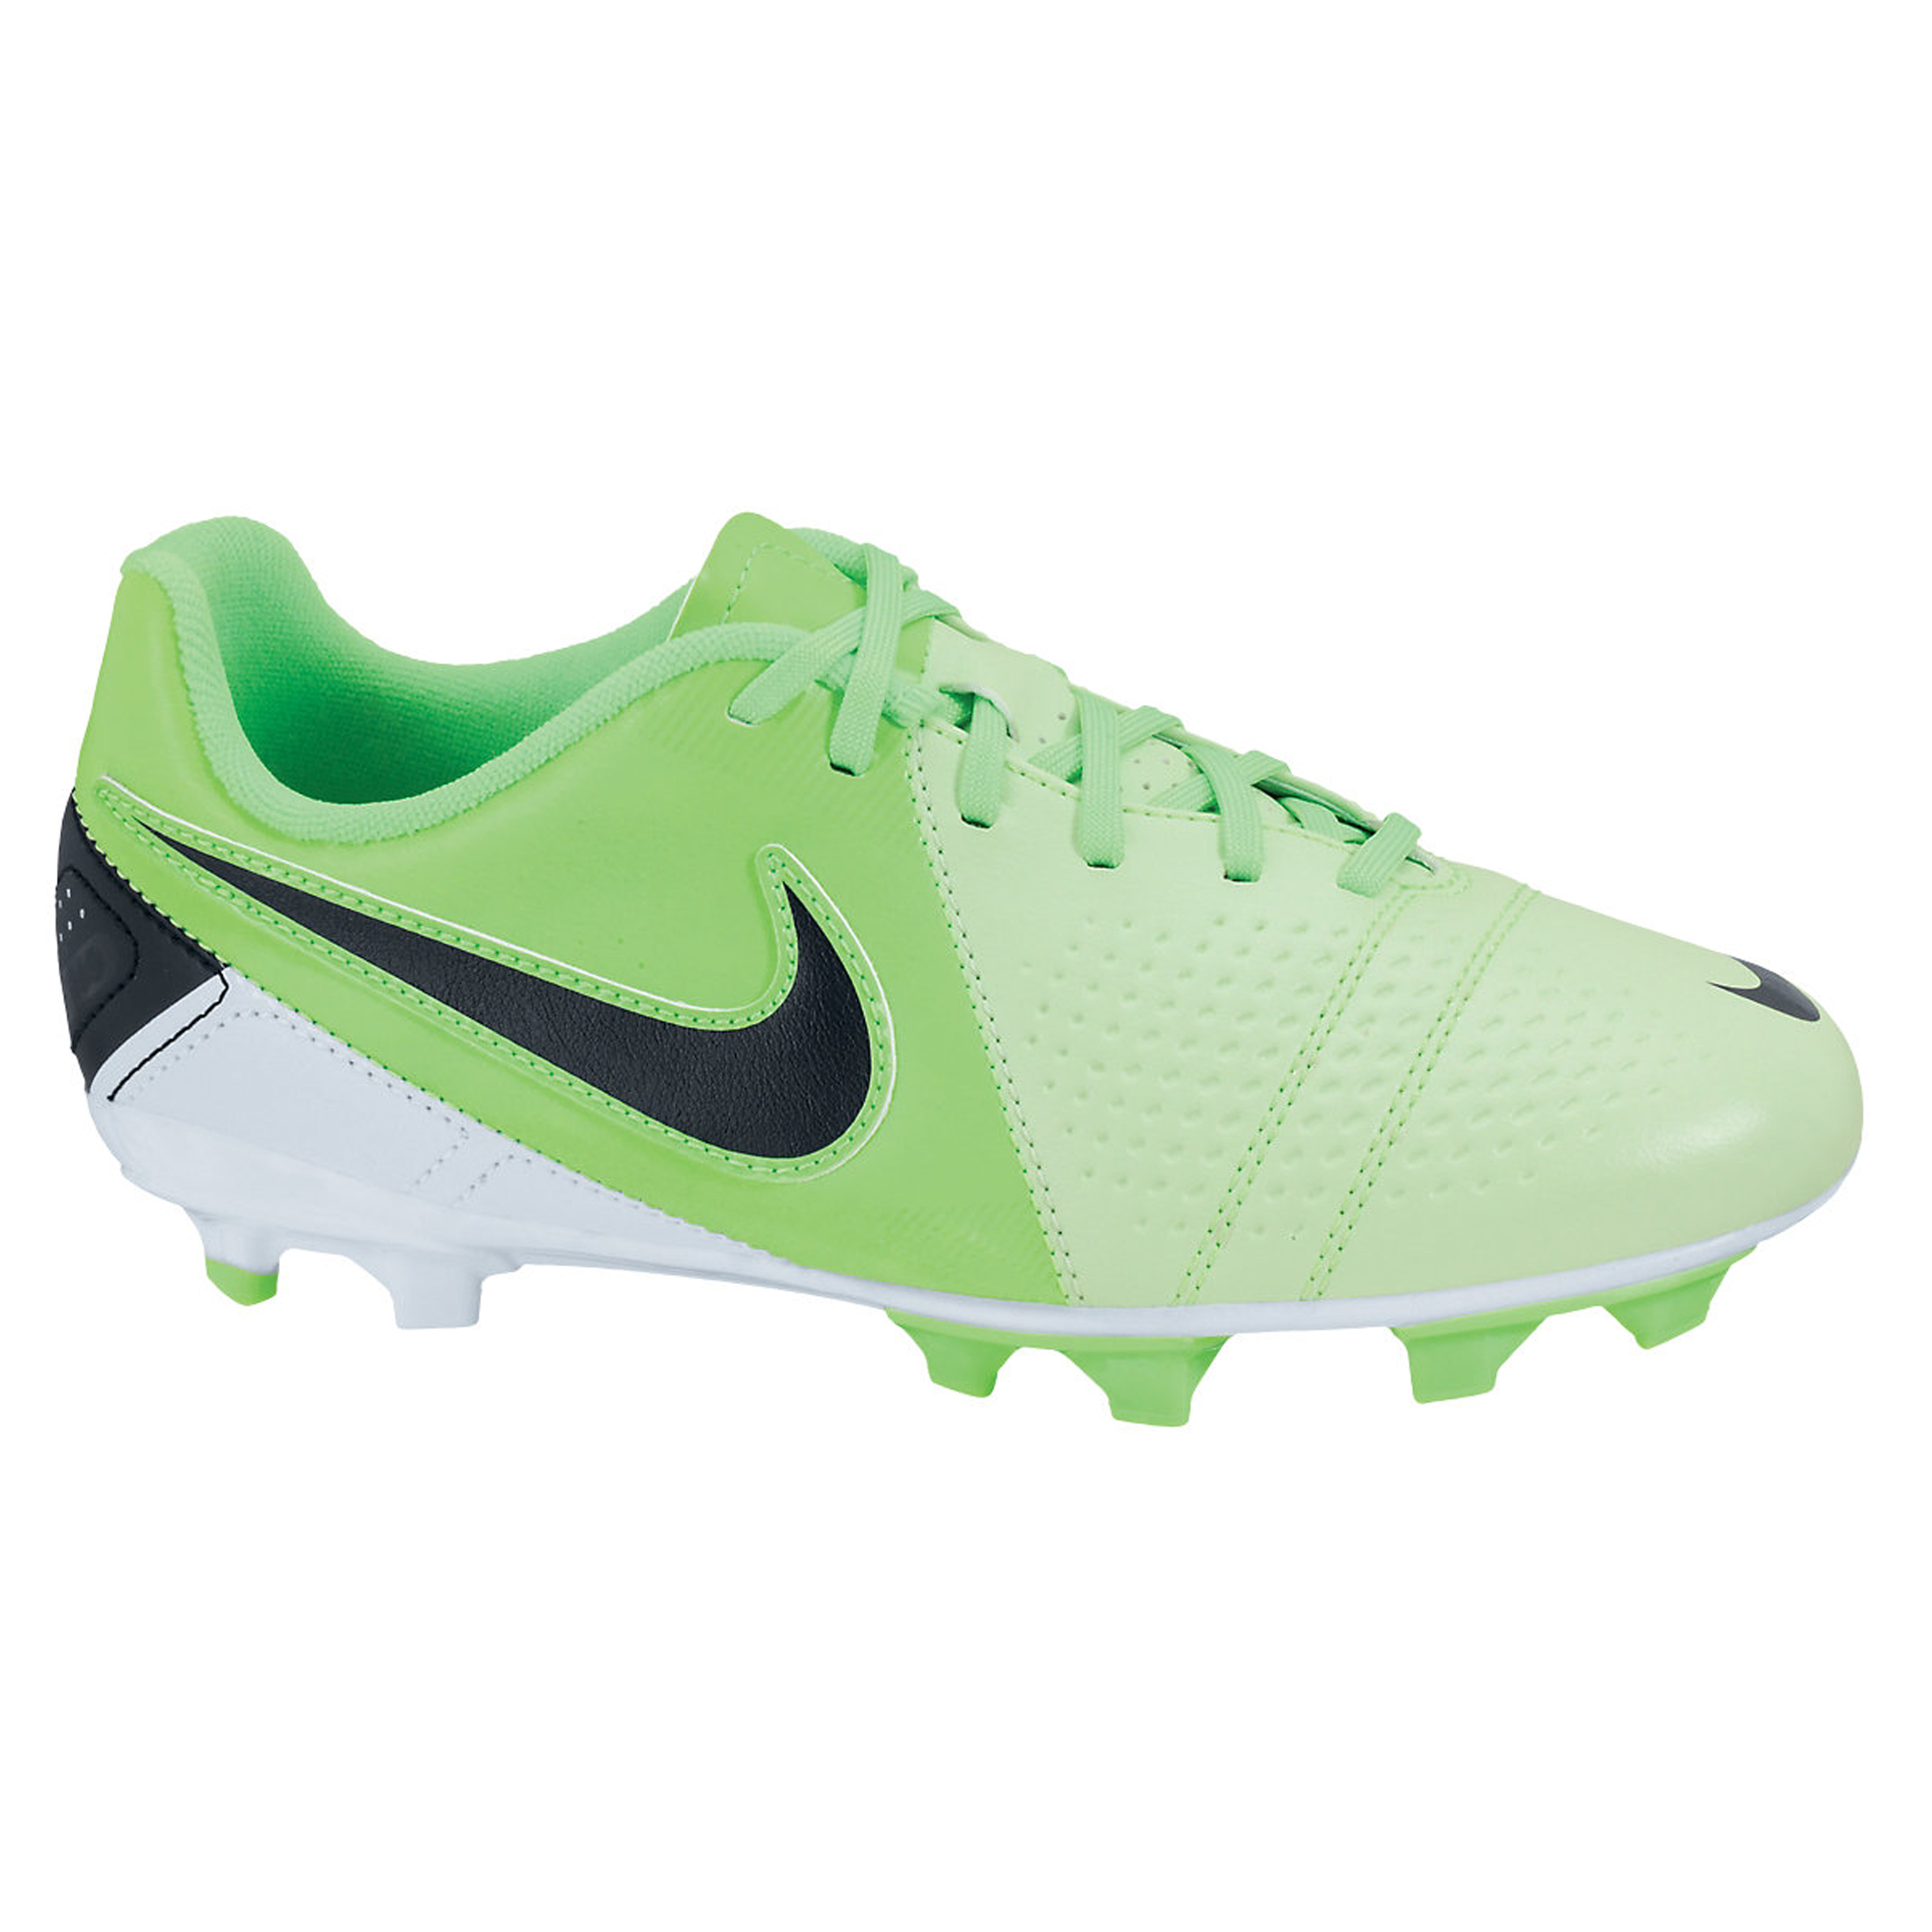 Nike CTR360 Libretto III Firm Ground Football Boots - Fresh Mint/Black/Neo Lime - Kids